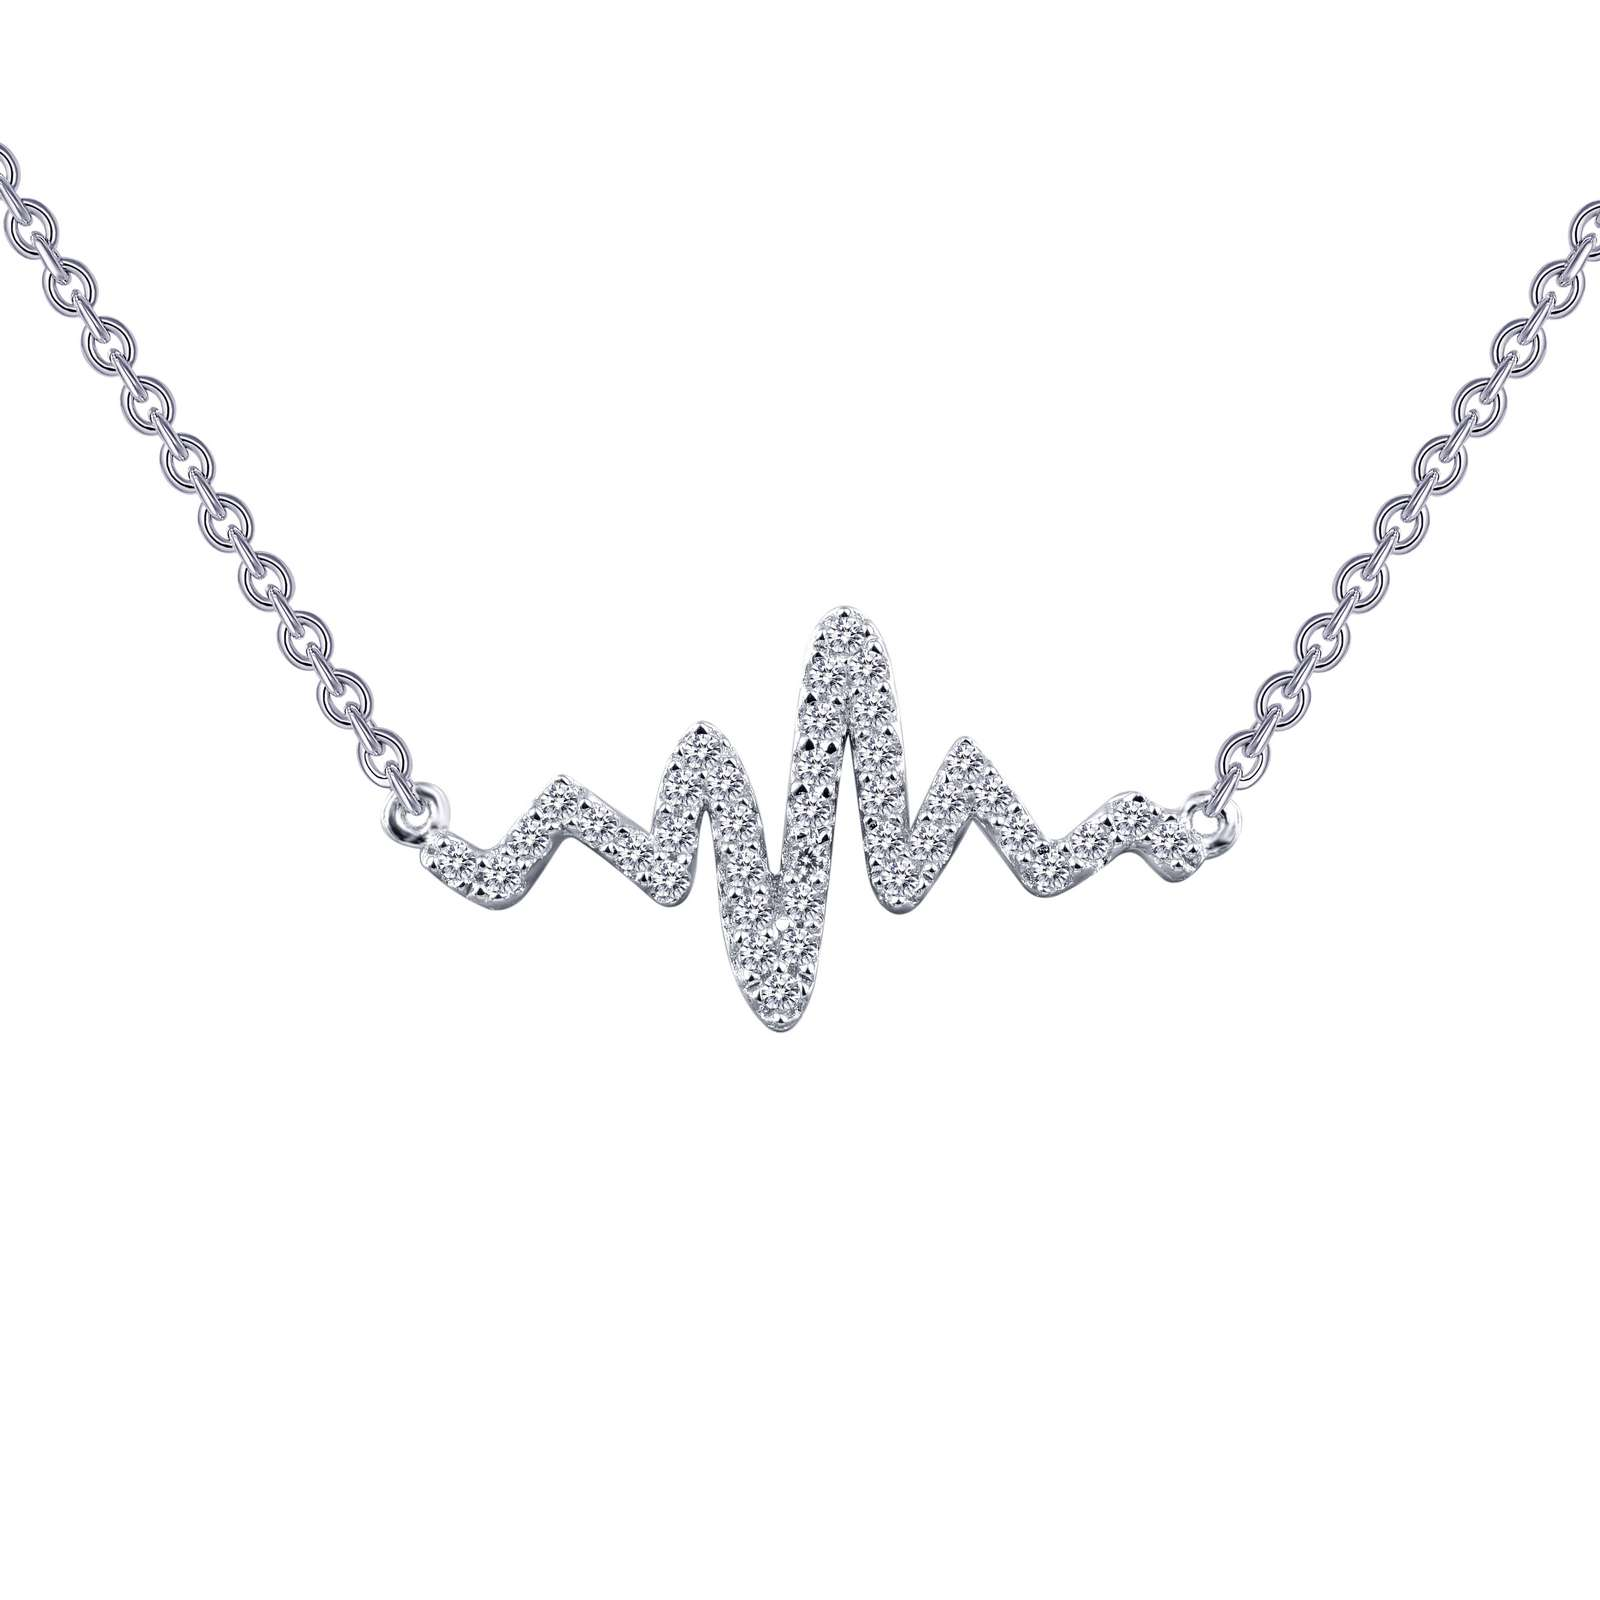 Classic Necklace - Playful and romantic. This heartbeat necklace is set with Lafonn's signature Lassaire clear simulated diamonds in sterling silver bonded with platinum.